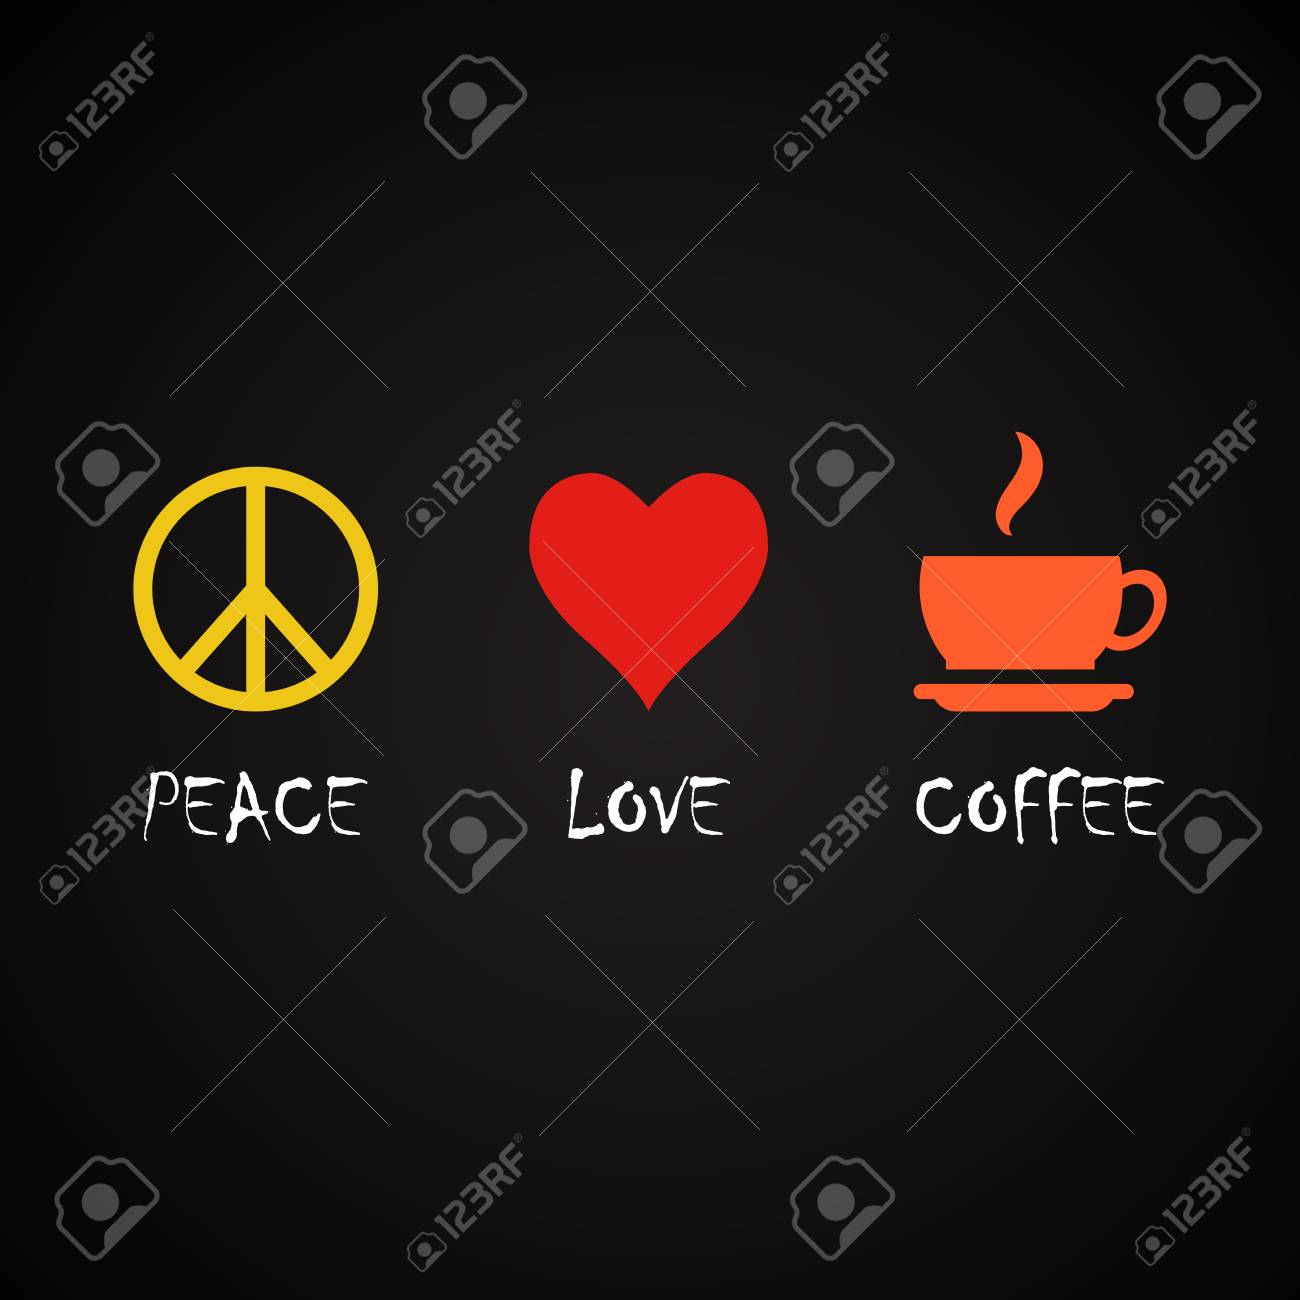 Peace And Love Coffee Coffee Quotes Template Royalty Free Cliparts